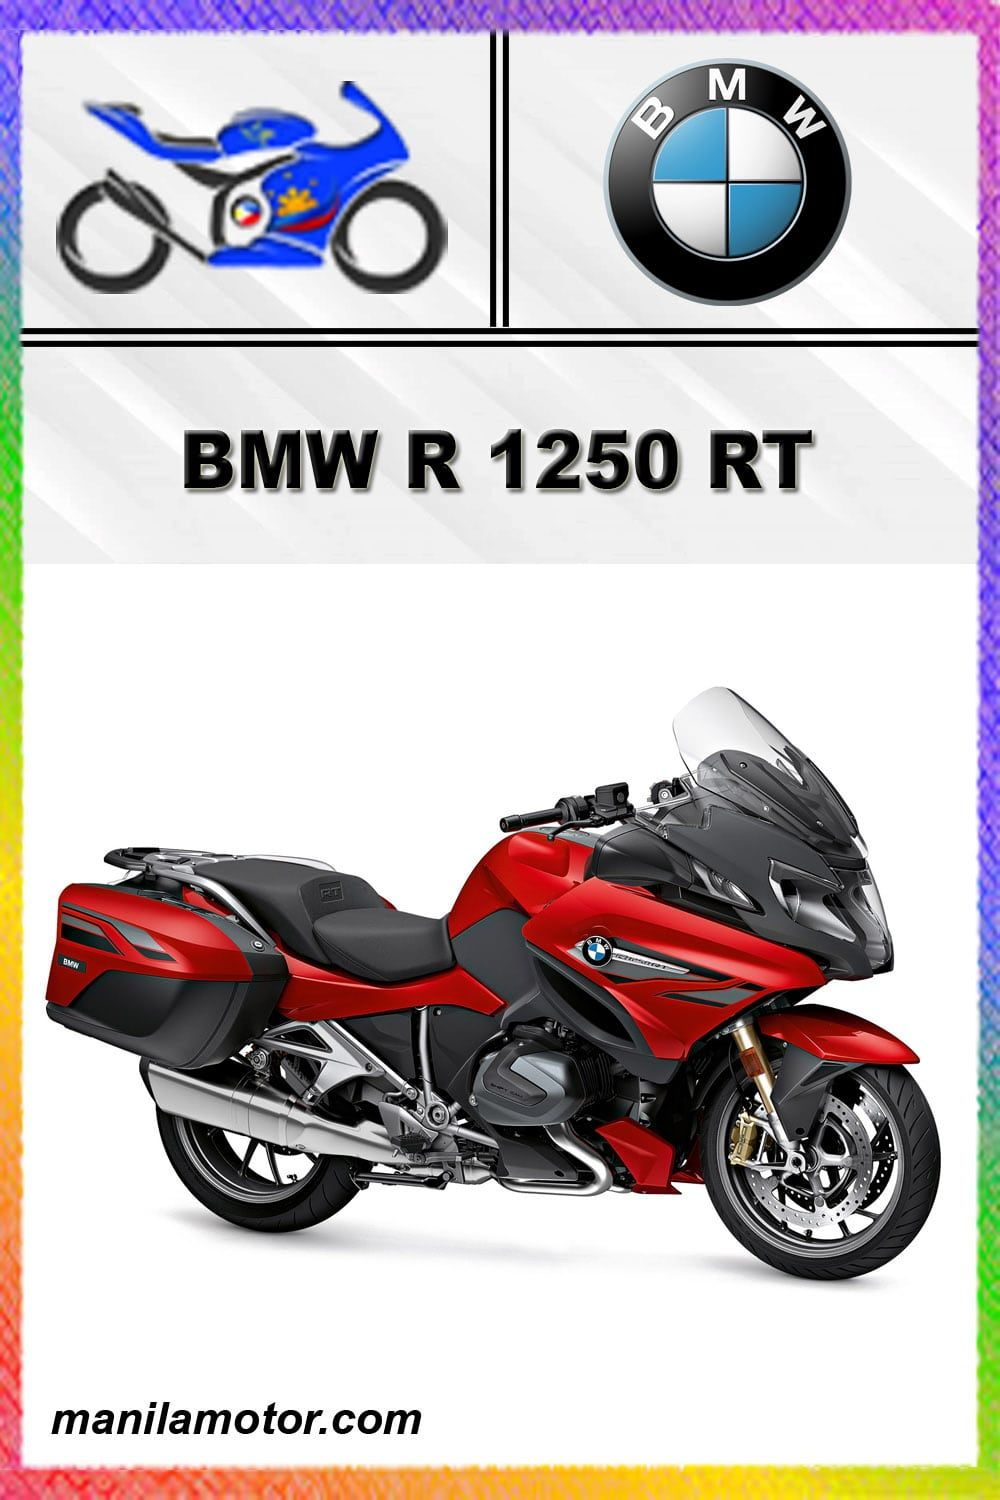 Bmw R 1250 Rt Price In In 2020 Bmw Kasama Motorcycle